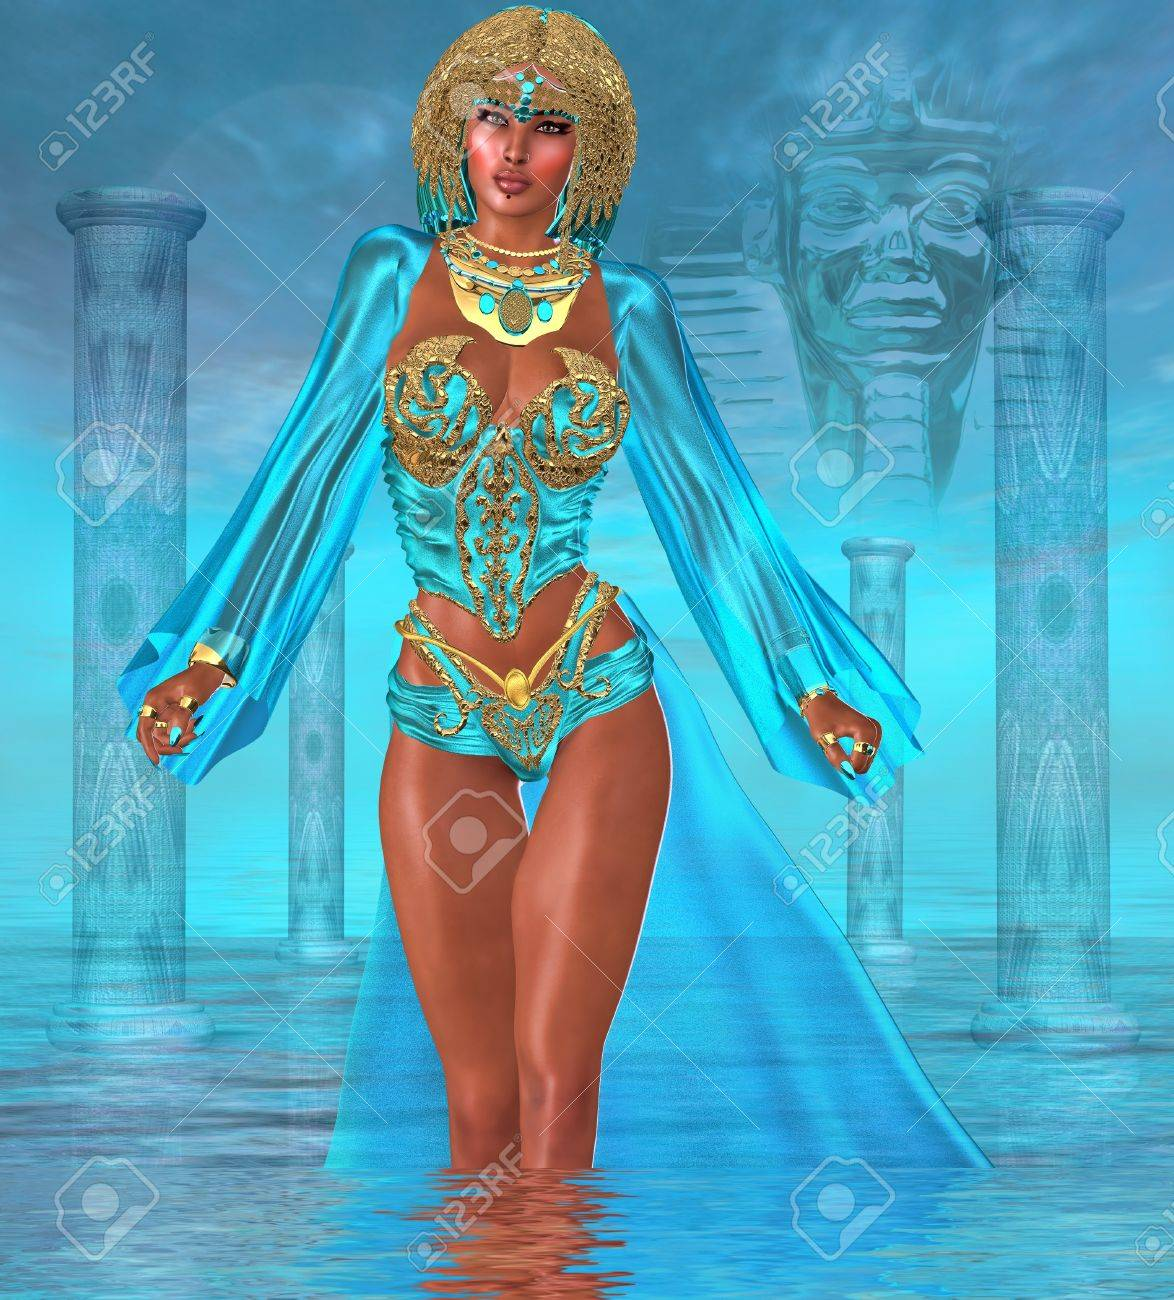 Ocean Goddess Standing In Water Deep within the oceans of the